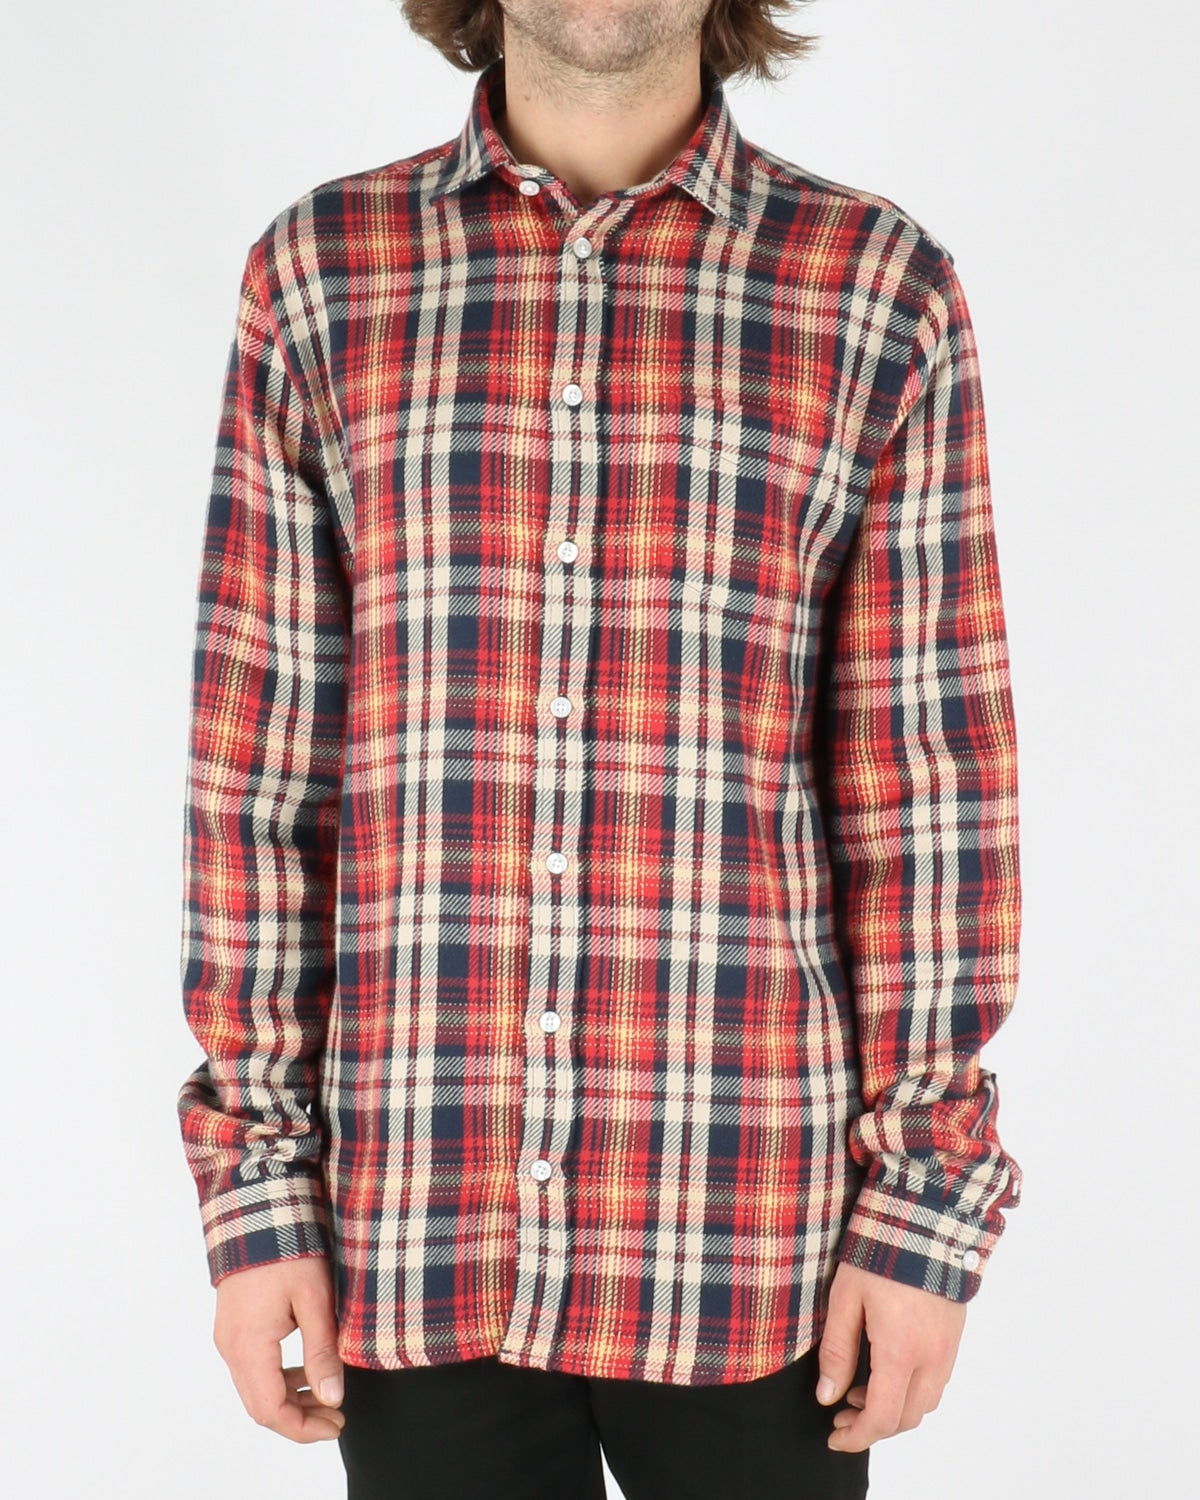 libertine libertine_lynch shirt_red navy check_1_3